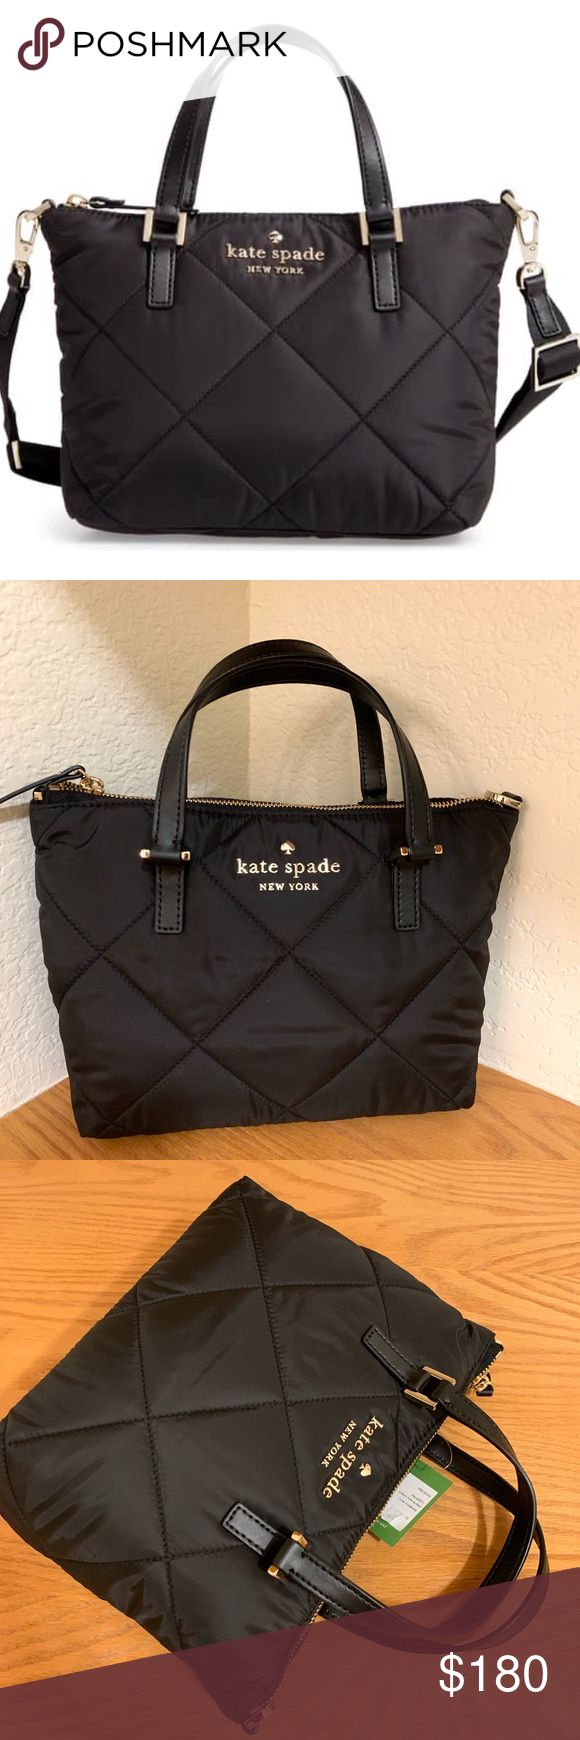 bdccb96bf Nwt Kate spade Watson lane lucie quilted crossbody Item is brand new with  tag attached SIZE